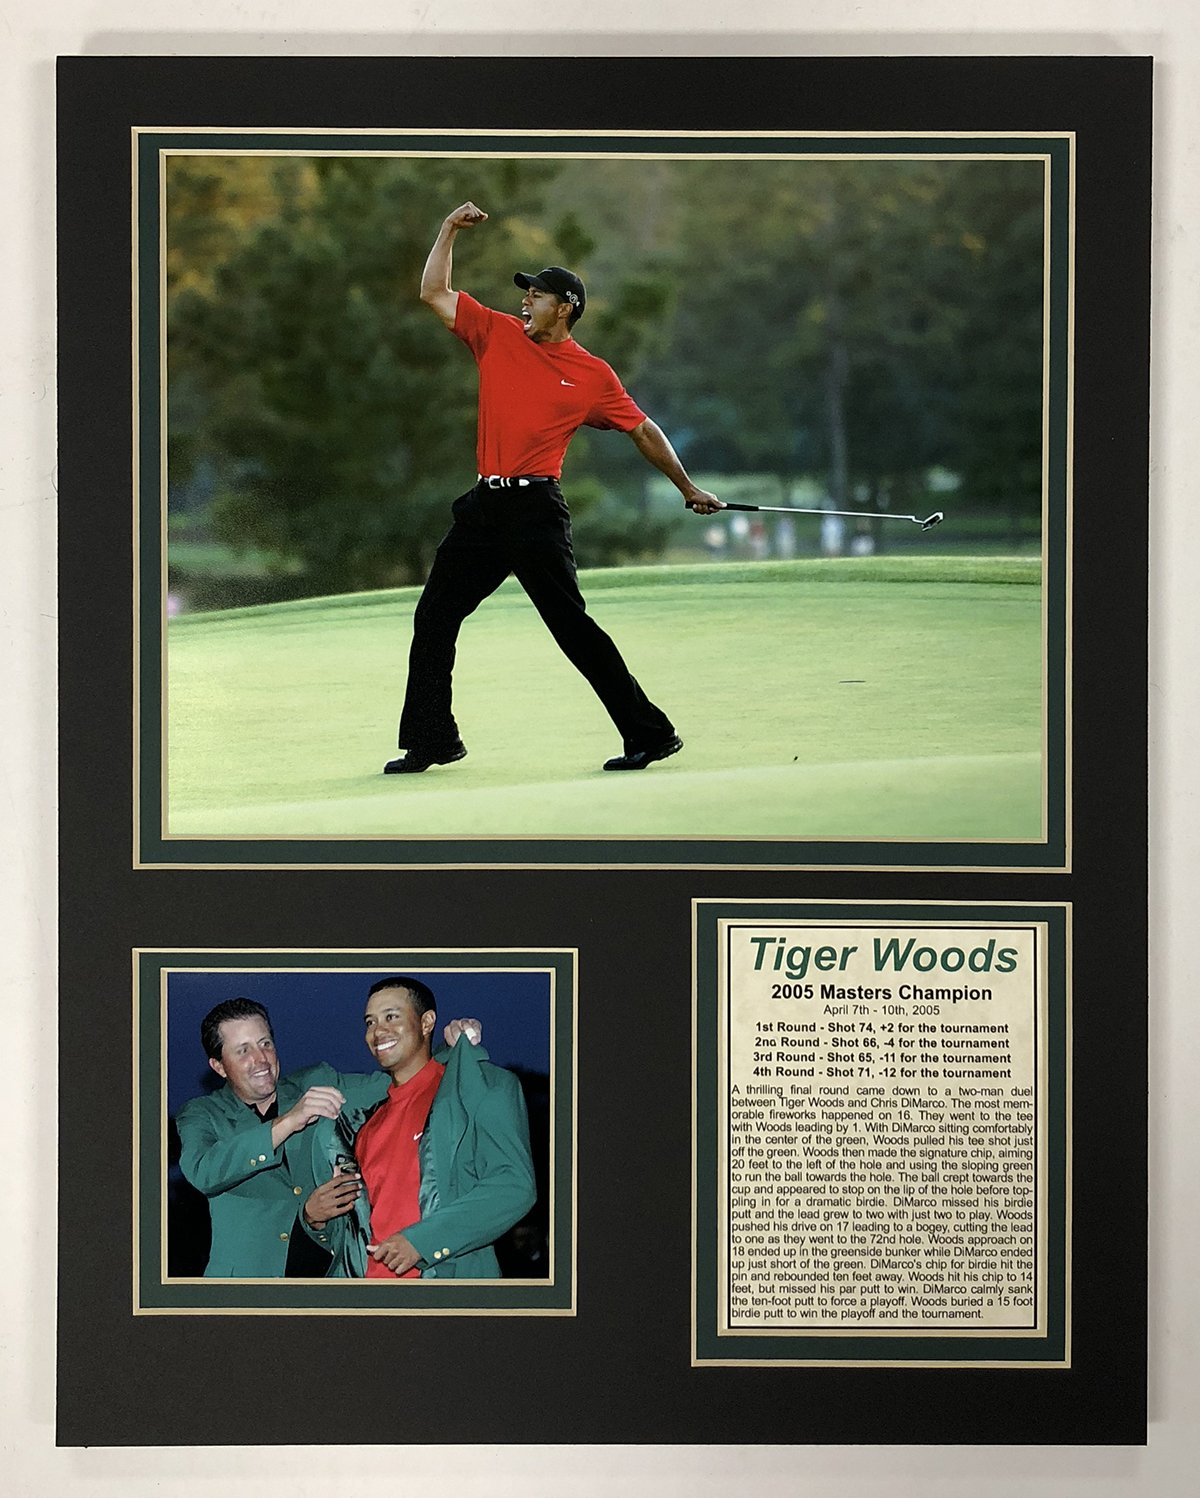 Legends Never Die Tiger Woods - 2005 Masters Champion - 11'' x 14'' Unframed Matted Photo Collage